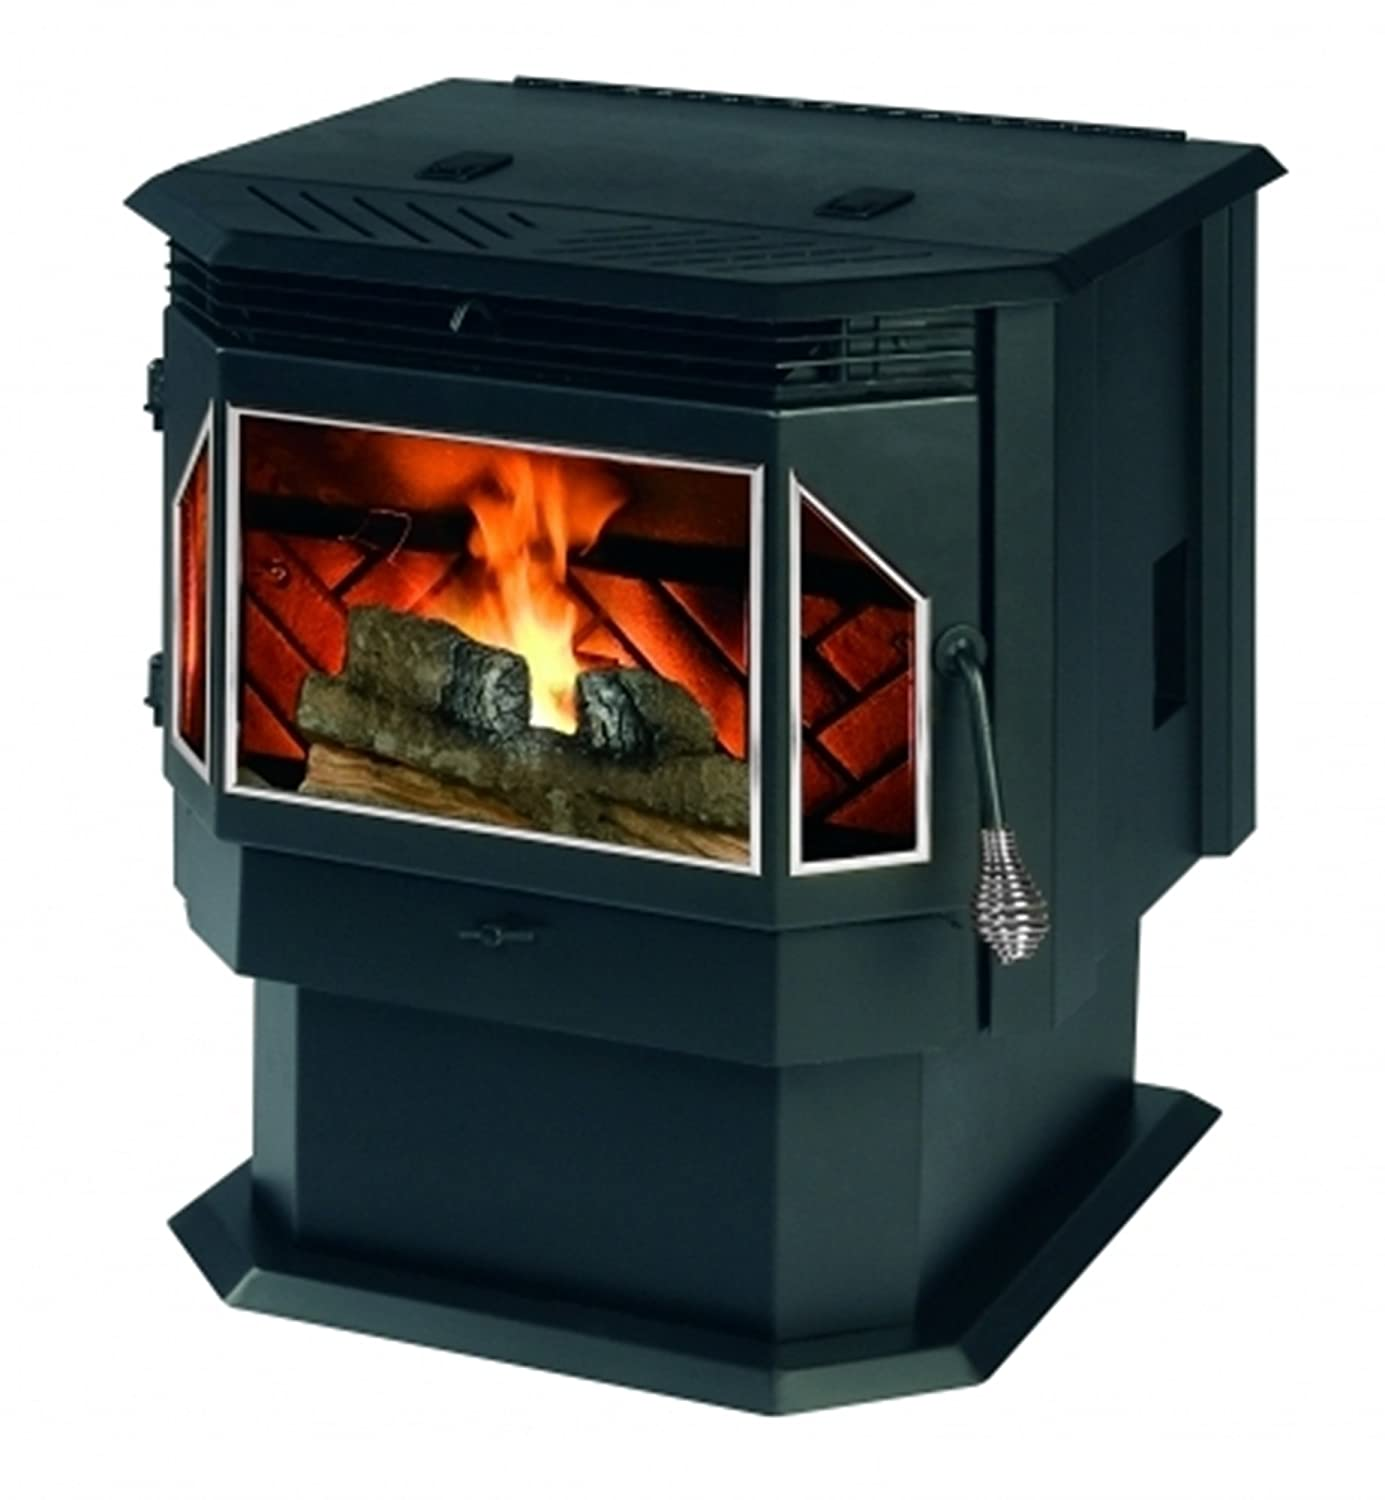 Summers Heat 55-SHPEP Evolution Pellet Stove 2,000 Square Foot